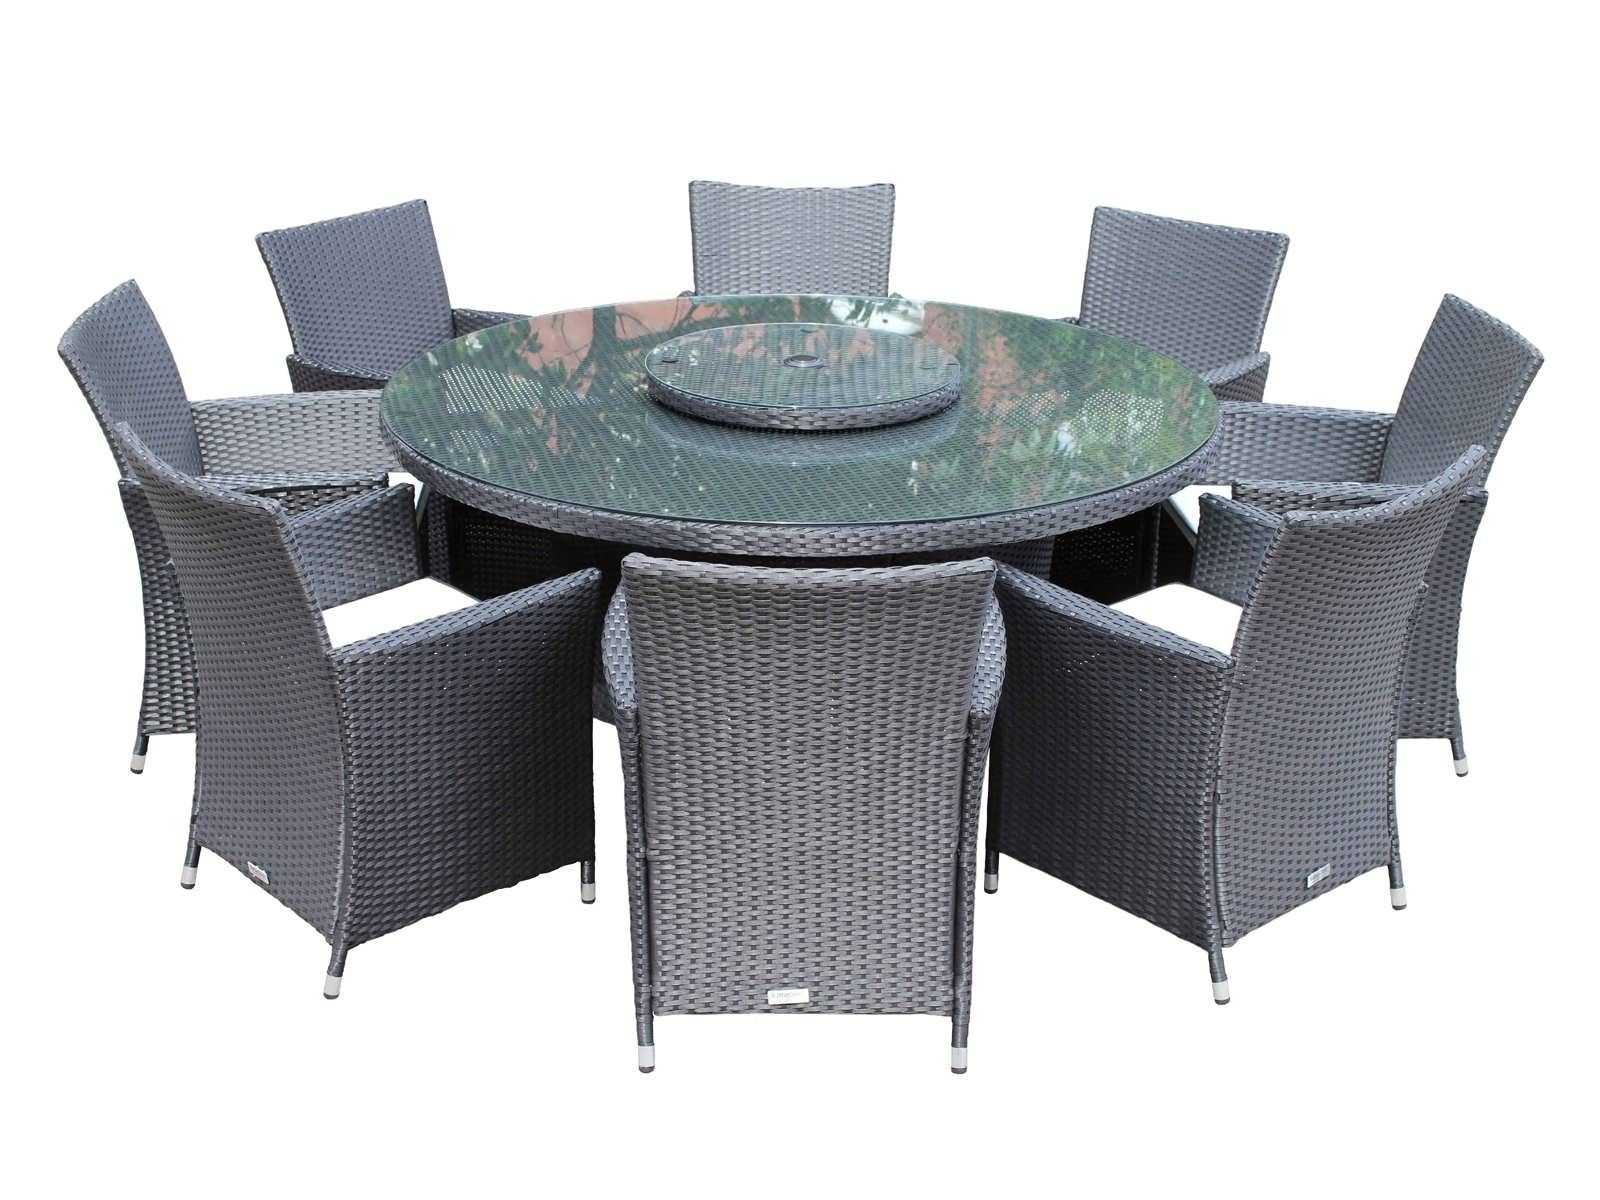 8 Cambridge Chairs With Large Round Table Dining Set With Free Lazy Susan    Black U0026